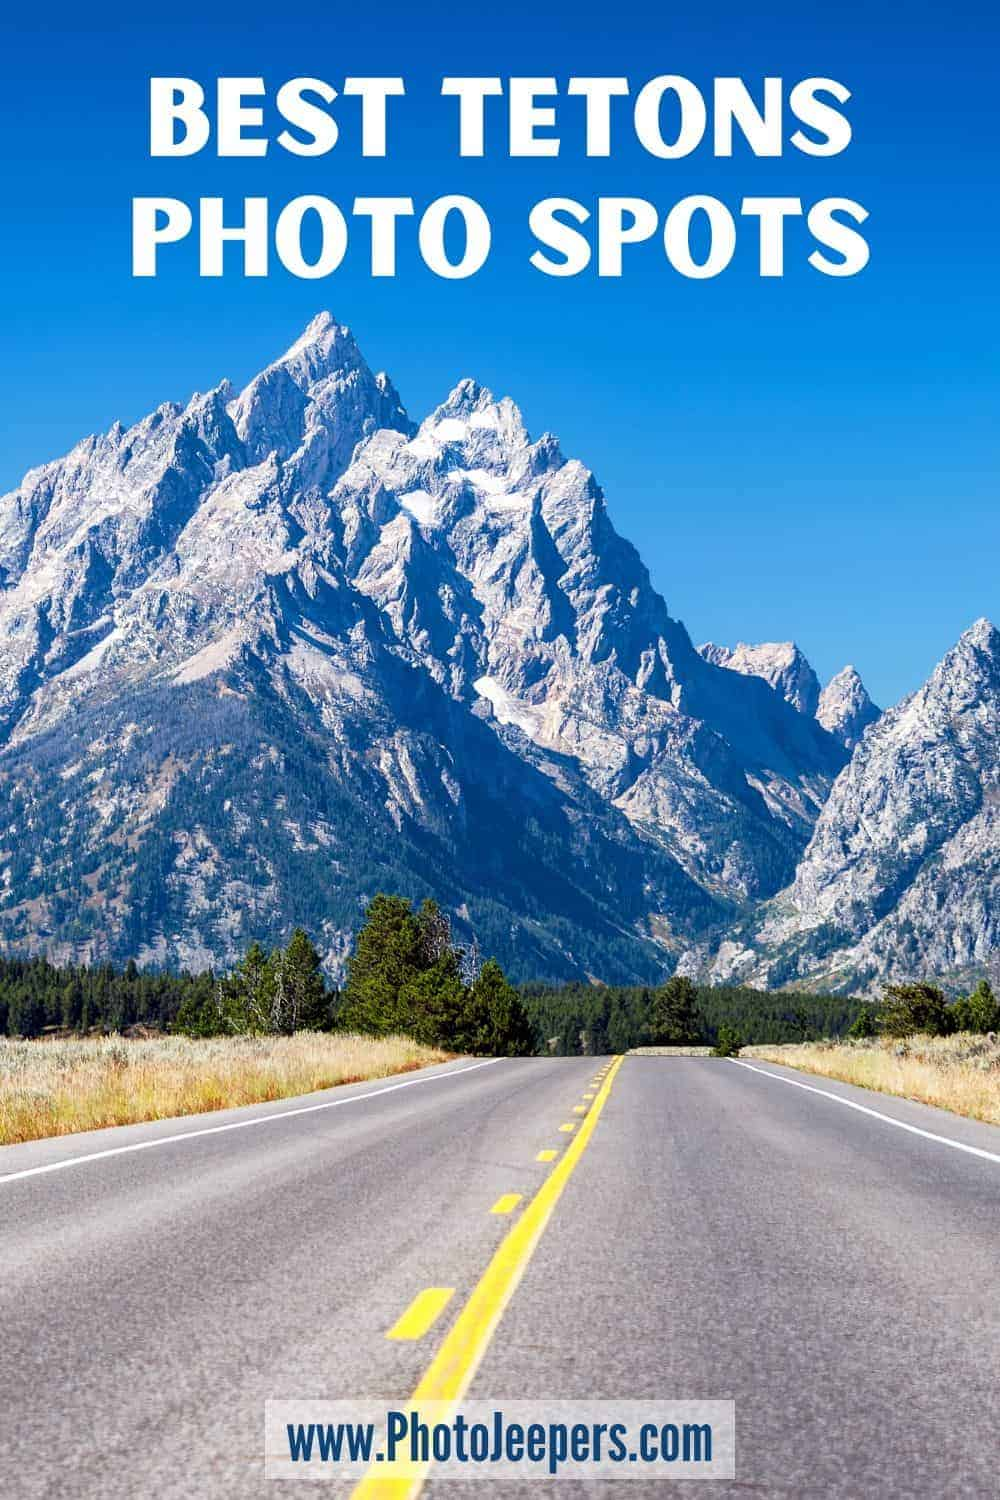 Use this guide to create a Grand Teton photography plan for your next vacation: Grand Teton Photography Map | Best Photo Spots at Grand Teton | Where to Photograph Wildlife | Best Places to Photograph Grand Tetons at Sunrise and Sunset | Grand Teton Photography Tips